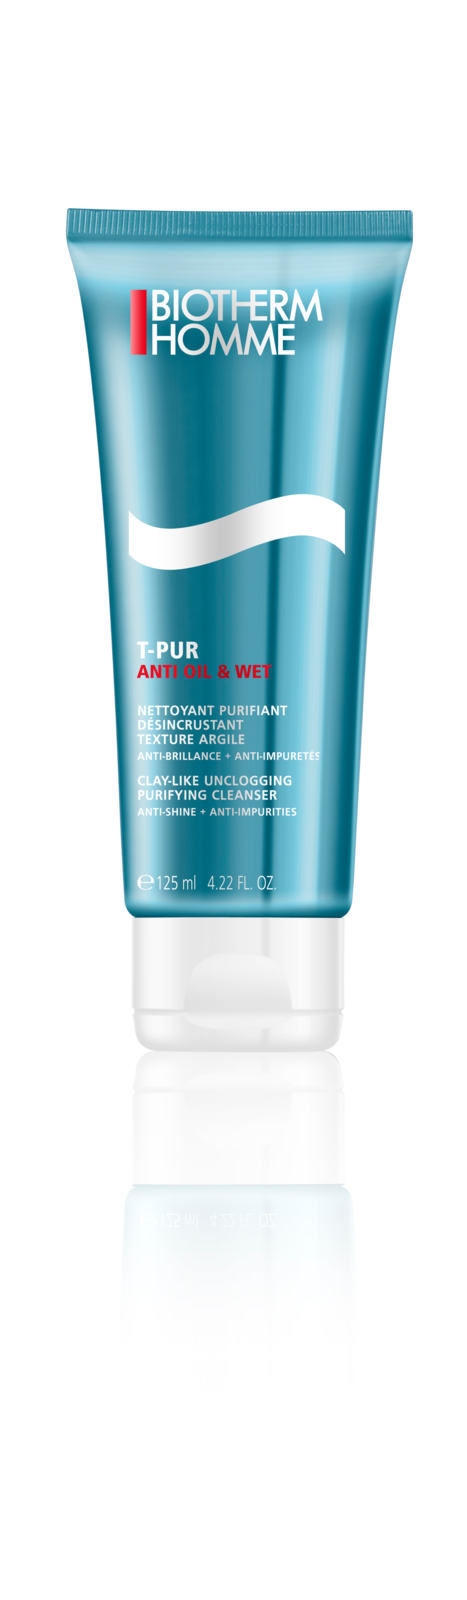 Biotherm T-Pur Anti Oil & Wet Clay Like Unclogging Purifying Cleaner Reinigingsgel 125 ml